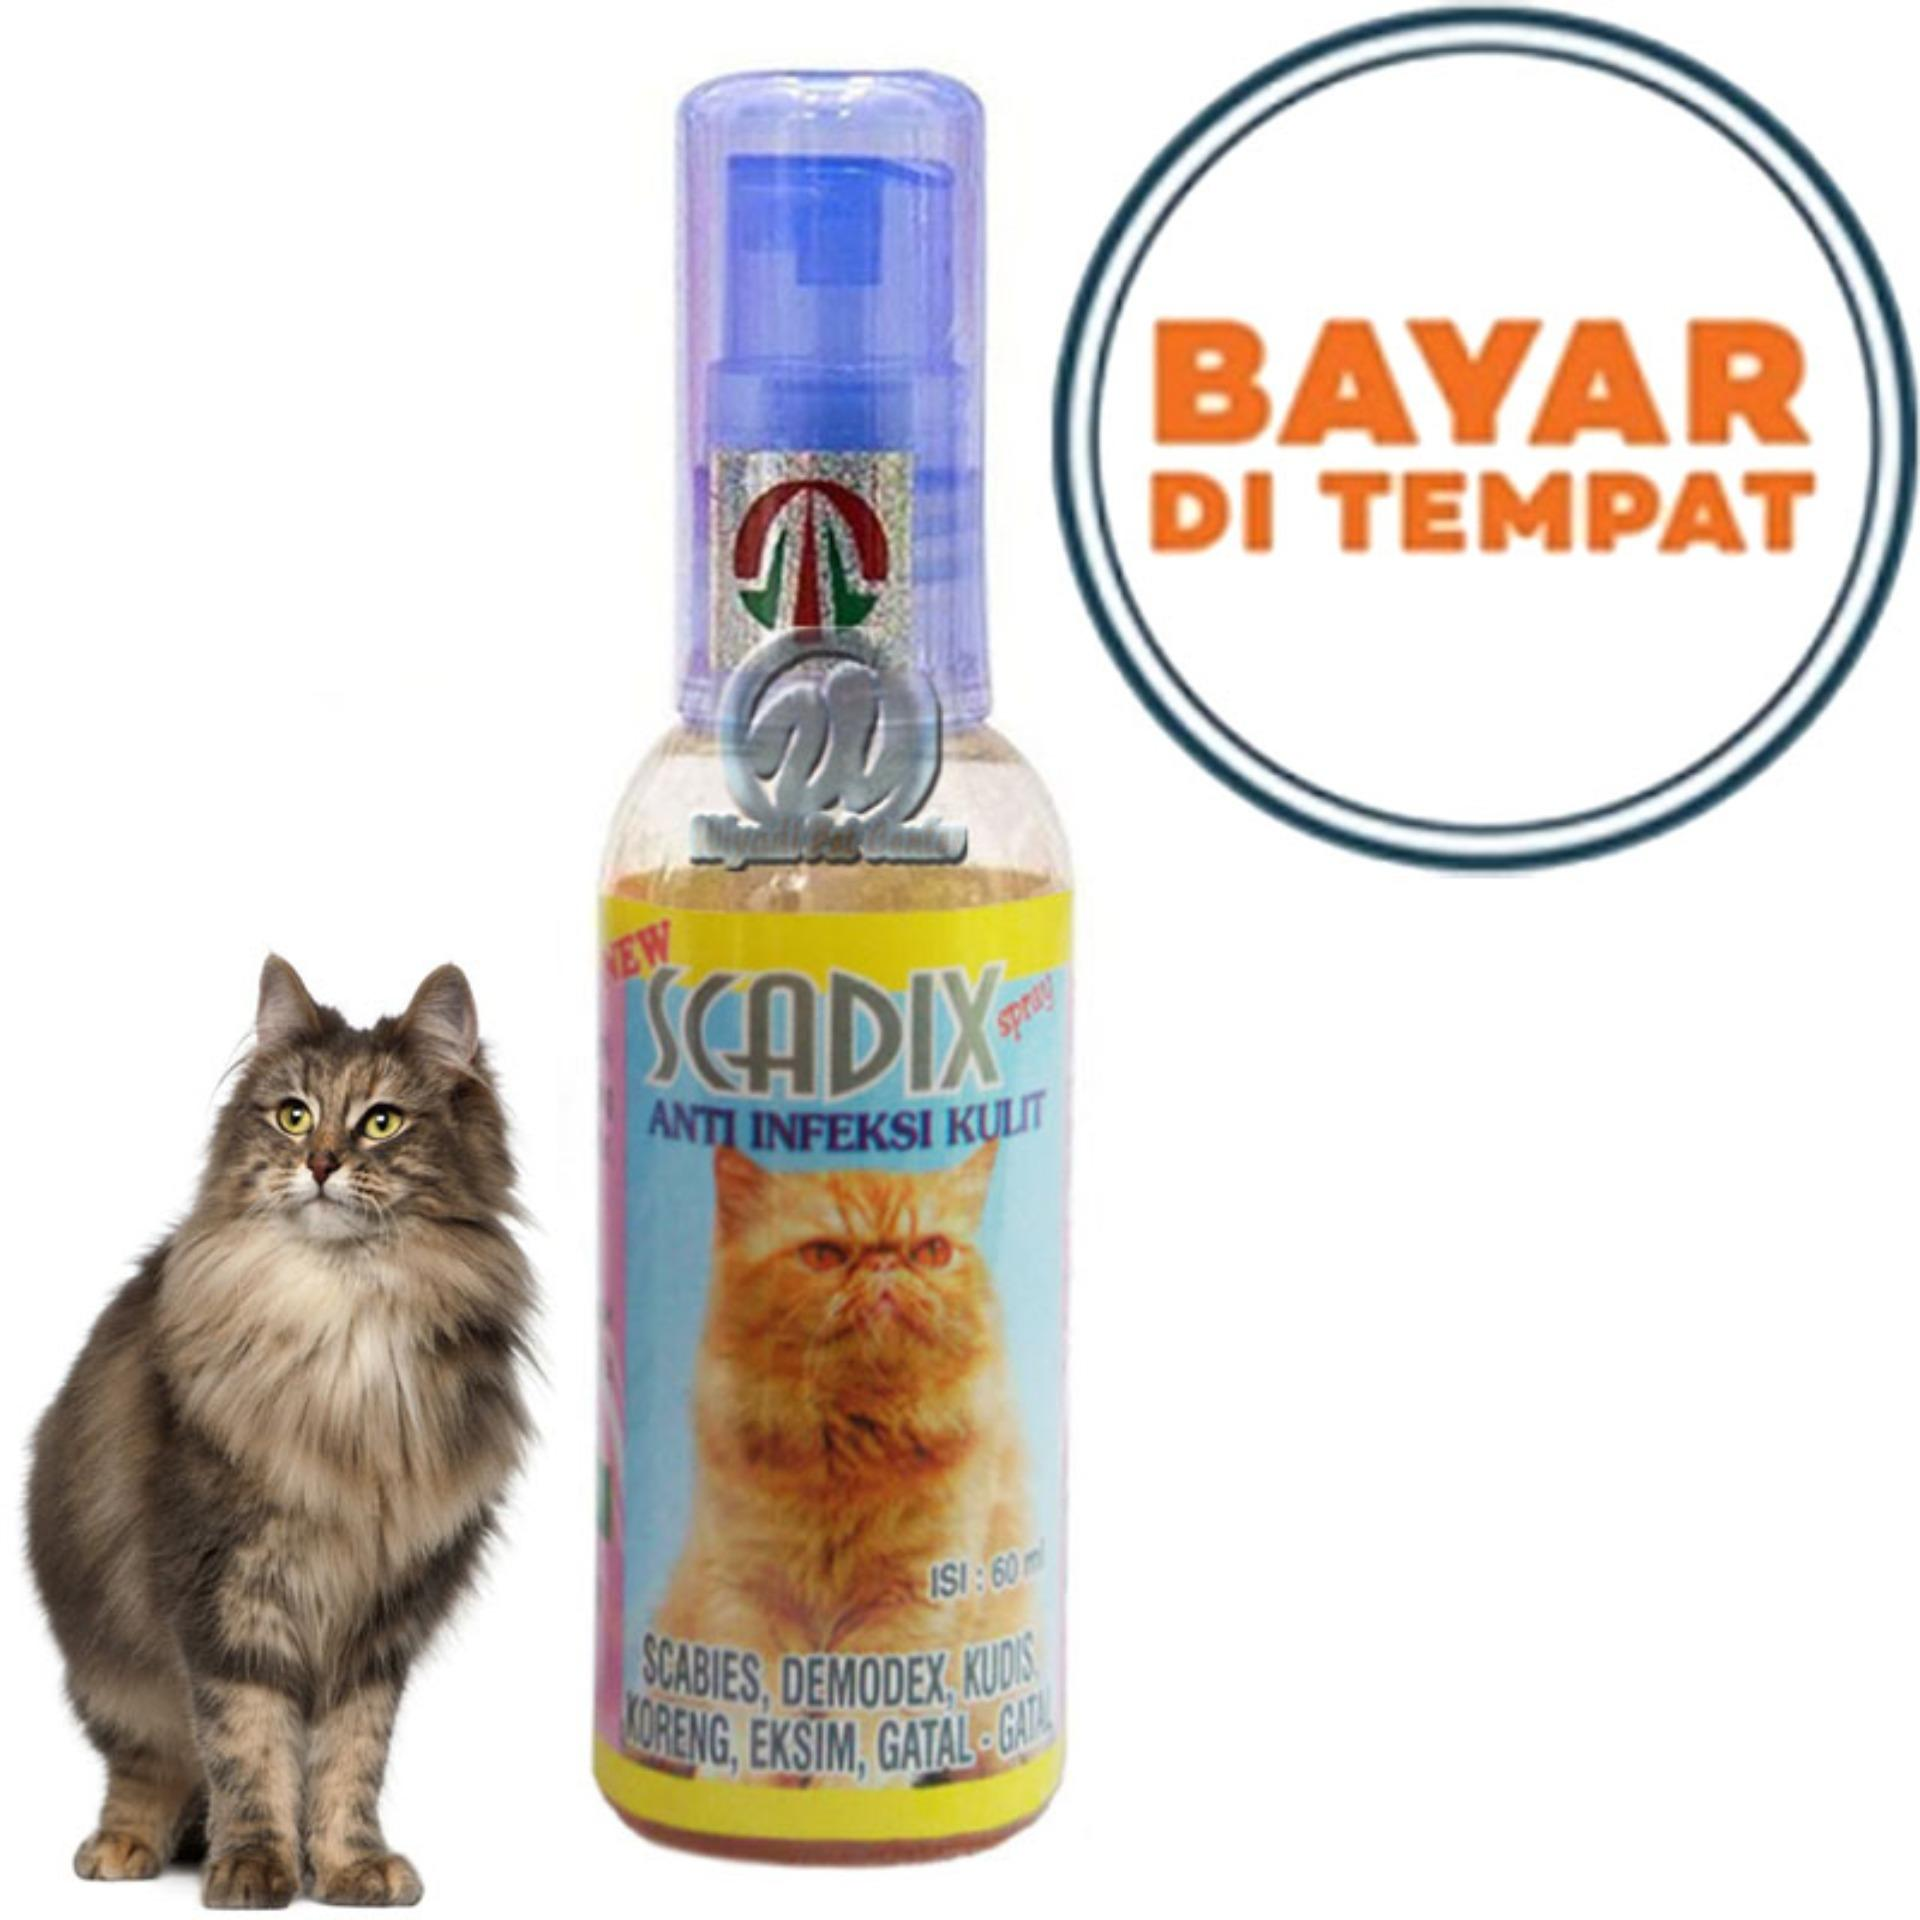 Obat Jamur Scabies Kucing Scadix By Lucky Petshop.